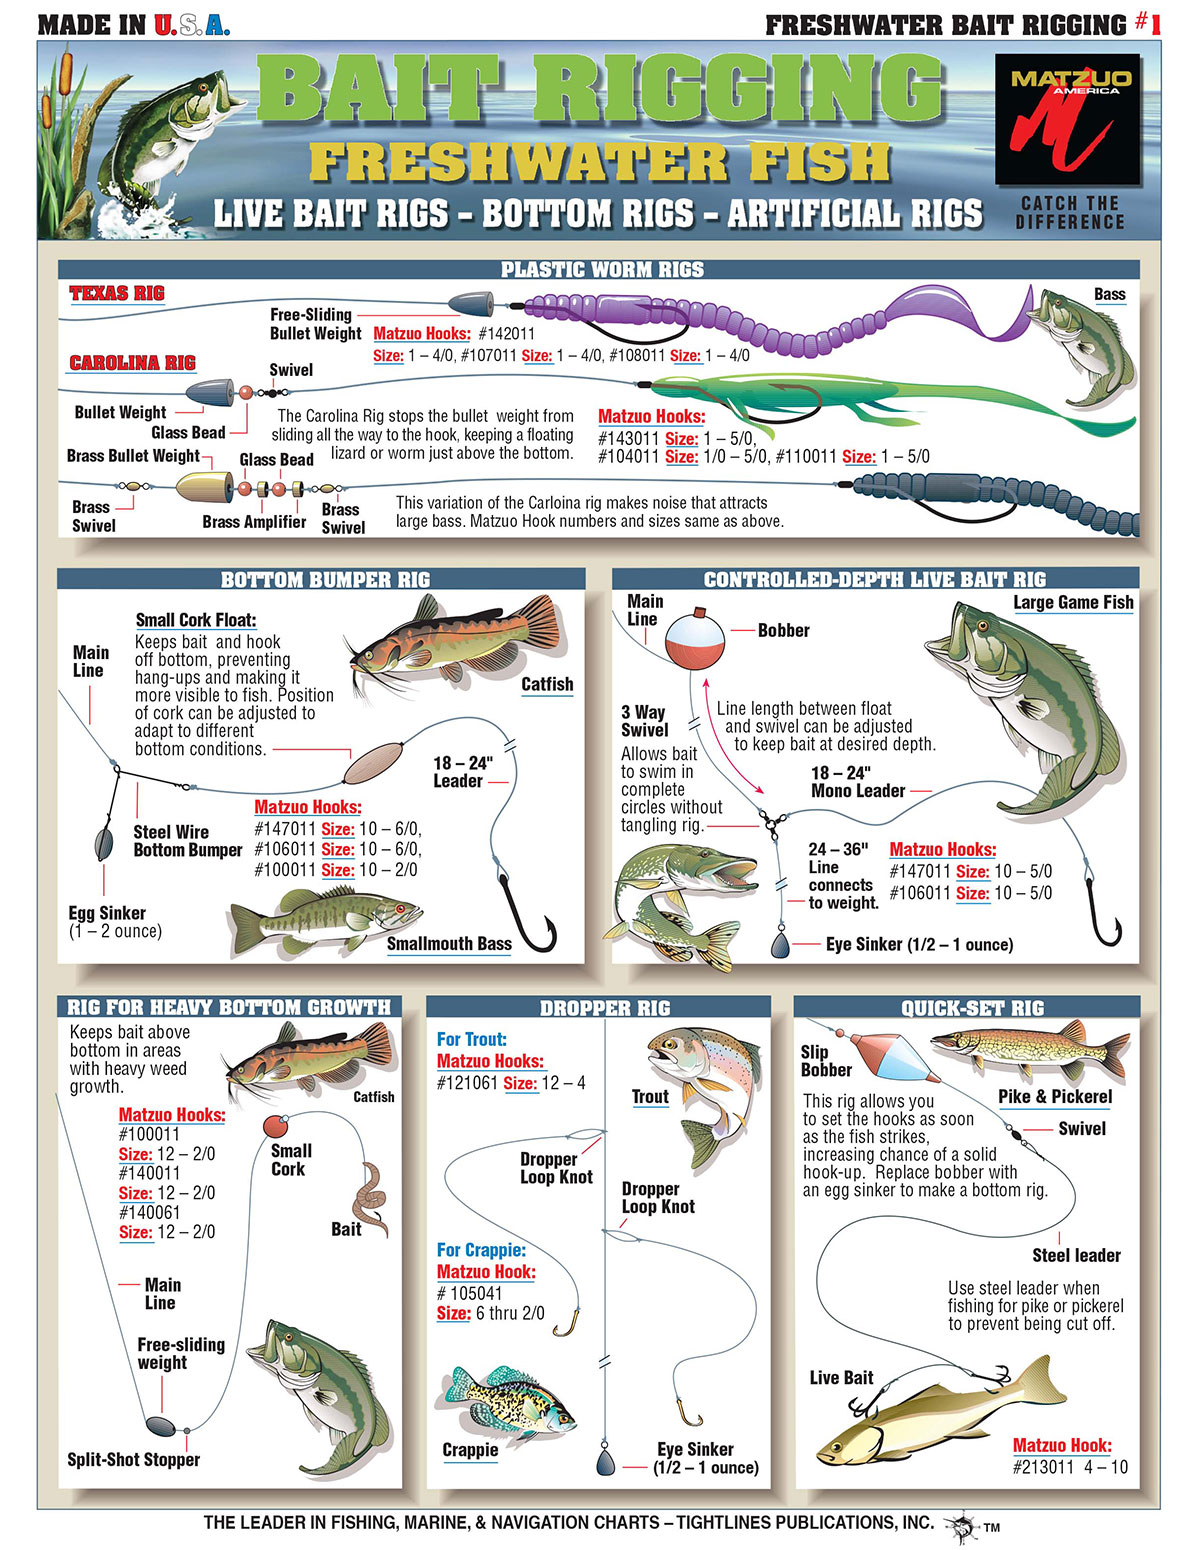 Bait rigging and knot tying techniques for inshore freshwater bass bait rigging and knot tying techniques for inshore freshwater bass catfish and crappie nvjuhfo Images